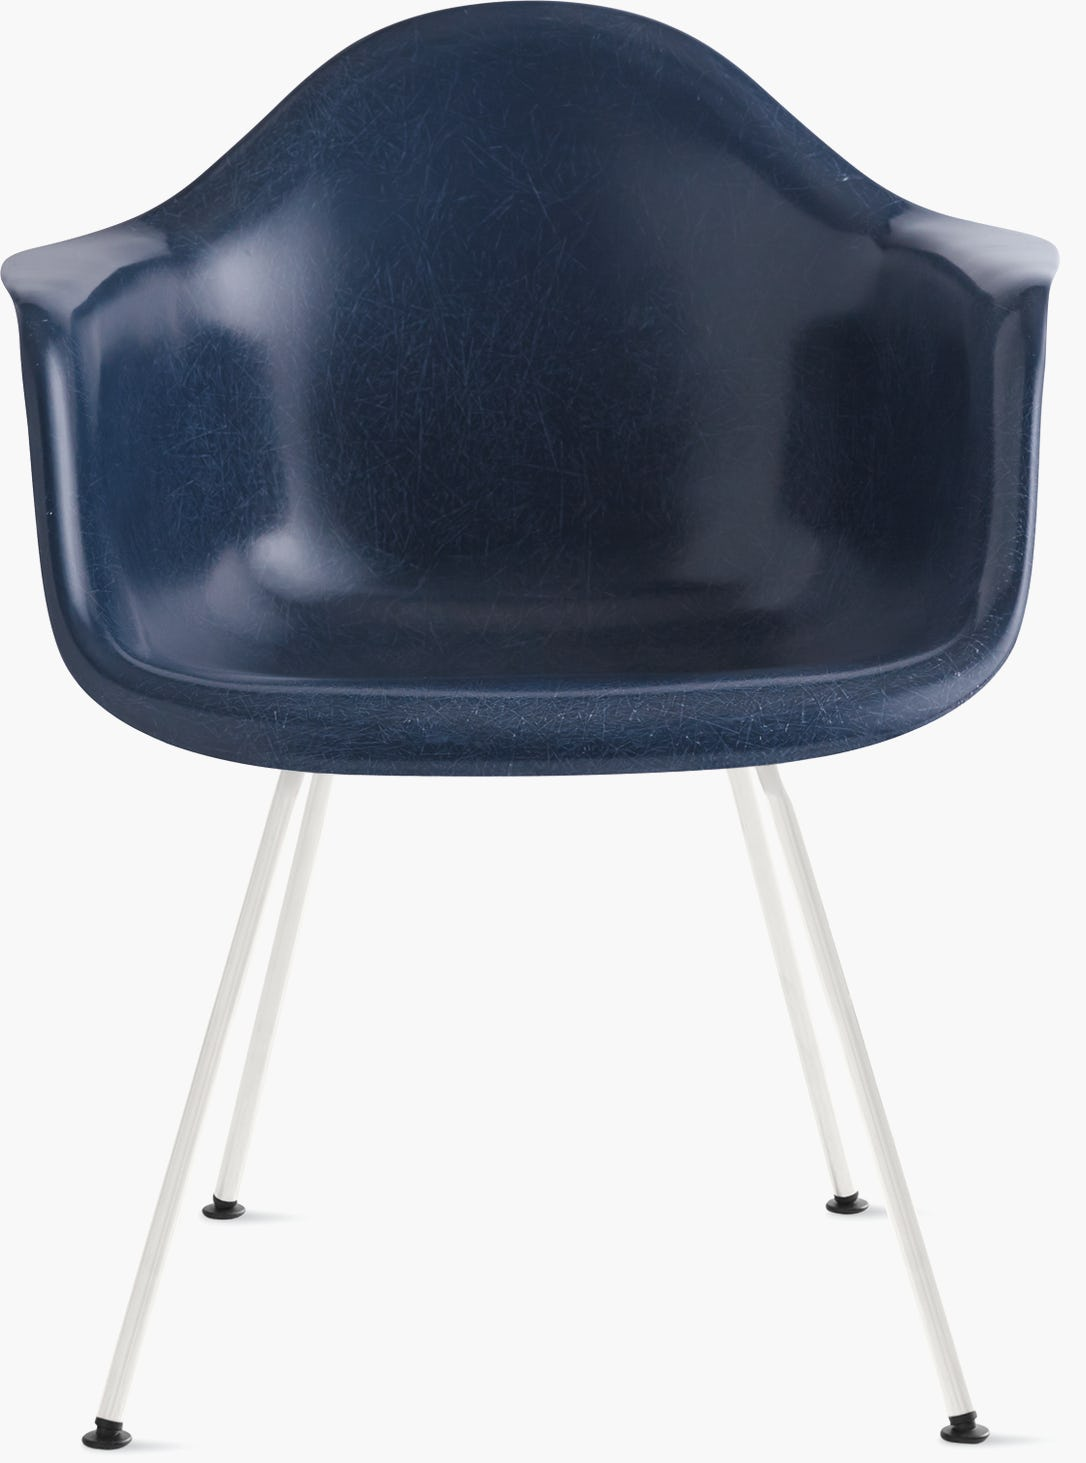 Eames Shell Armchair - Design Within Reach